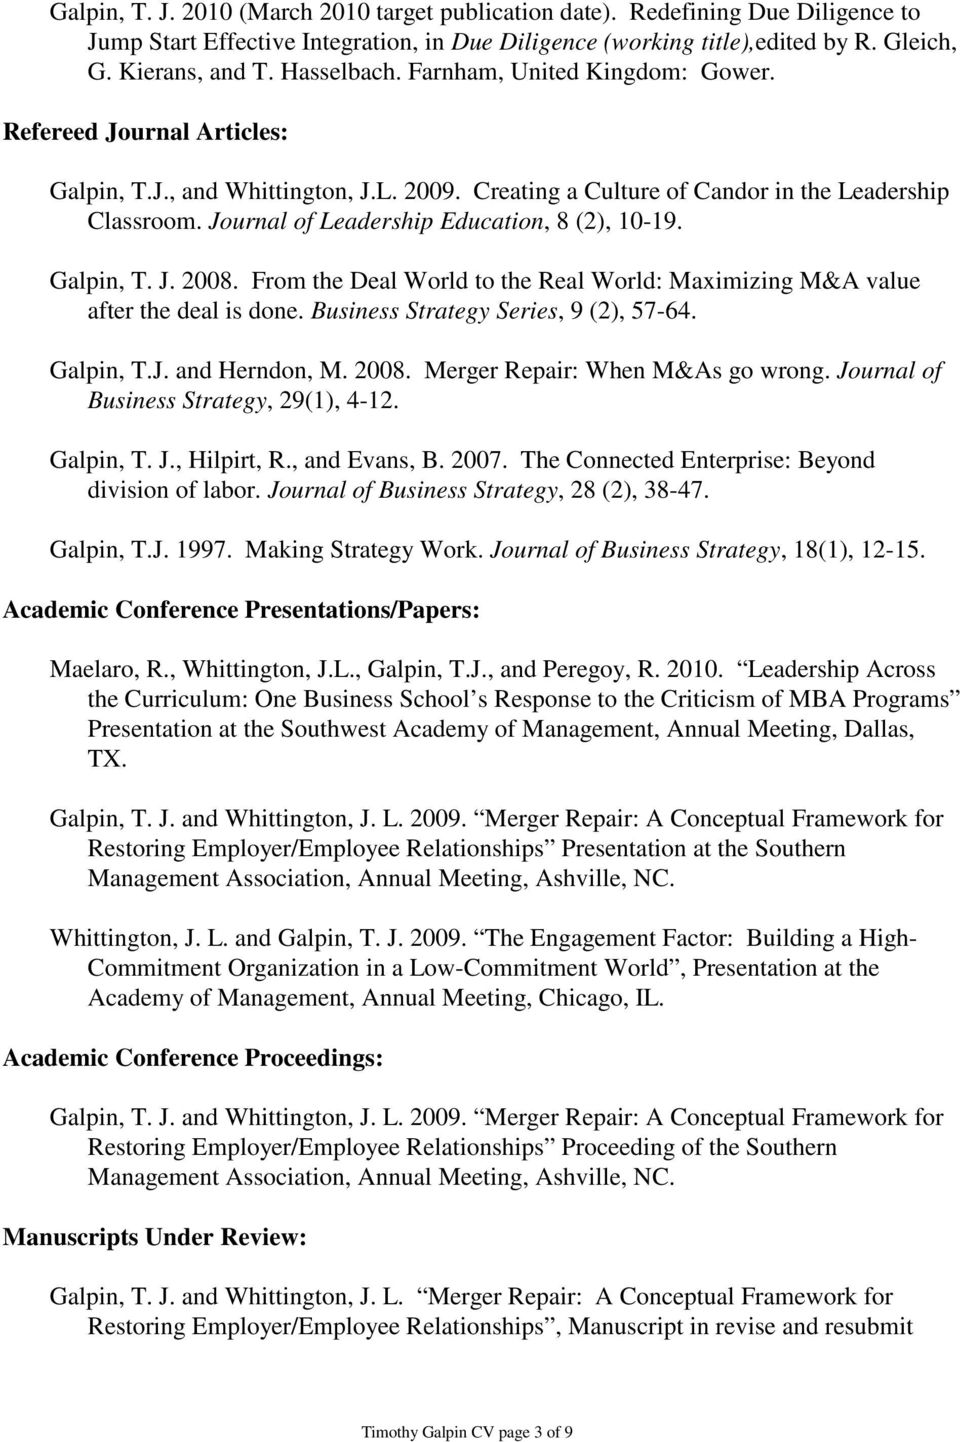 Journal of Leadership Education, 8 (2), 10-19. Galpin, T. J. 2008. From the Deal World to the Real World: Maximizing M&A value after the deal is done. Business Strategy Series, 9 (2), 57-64.